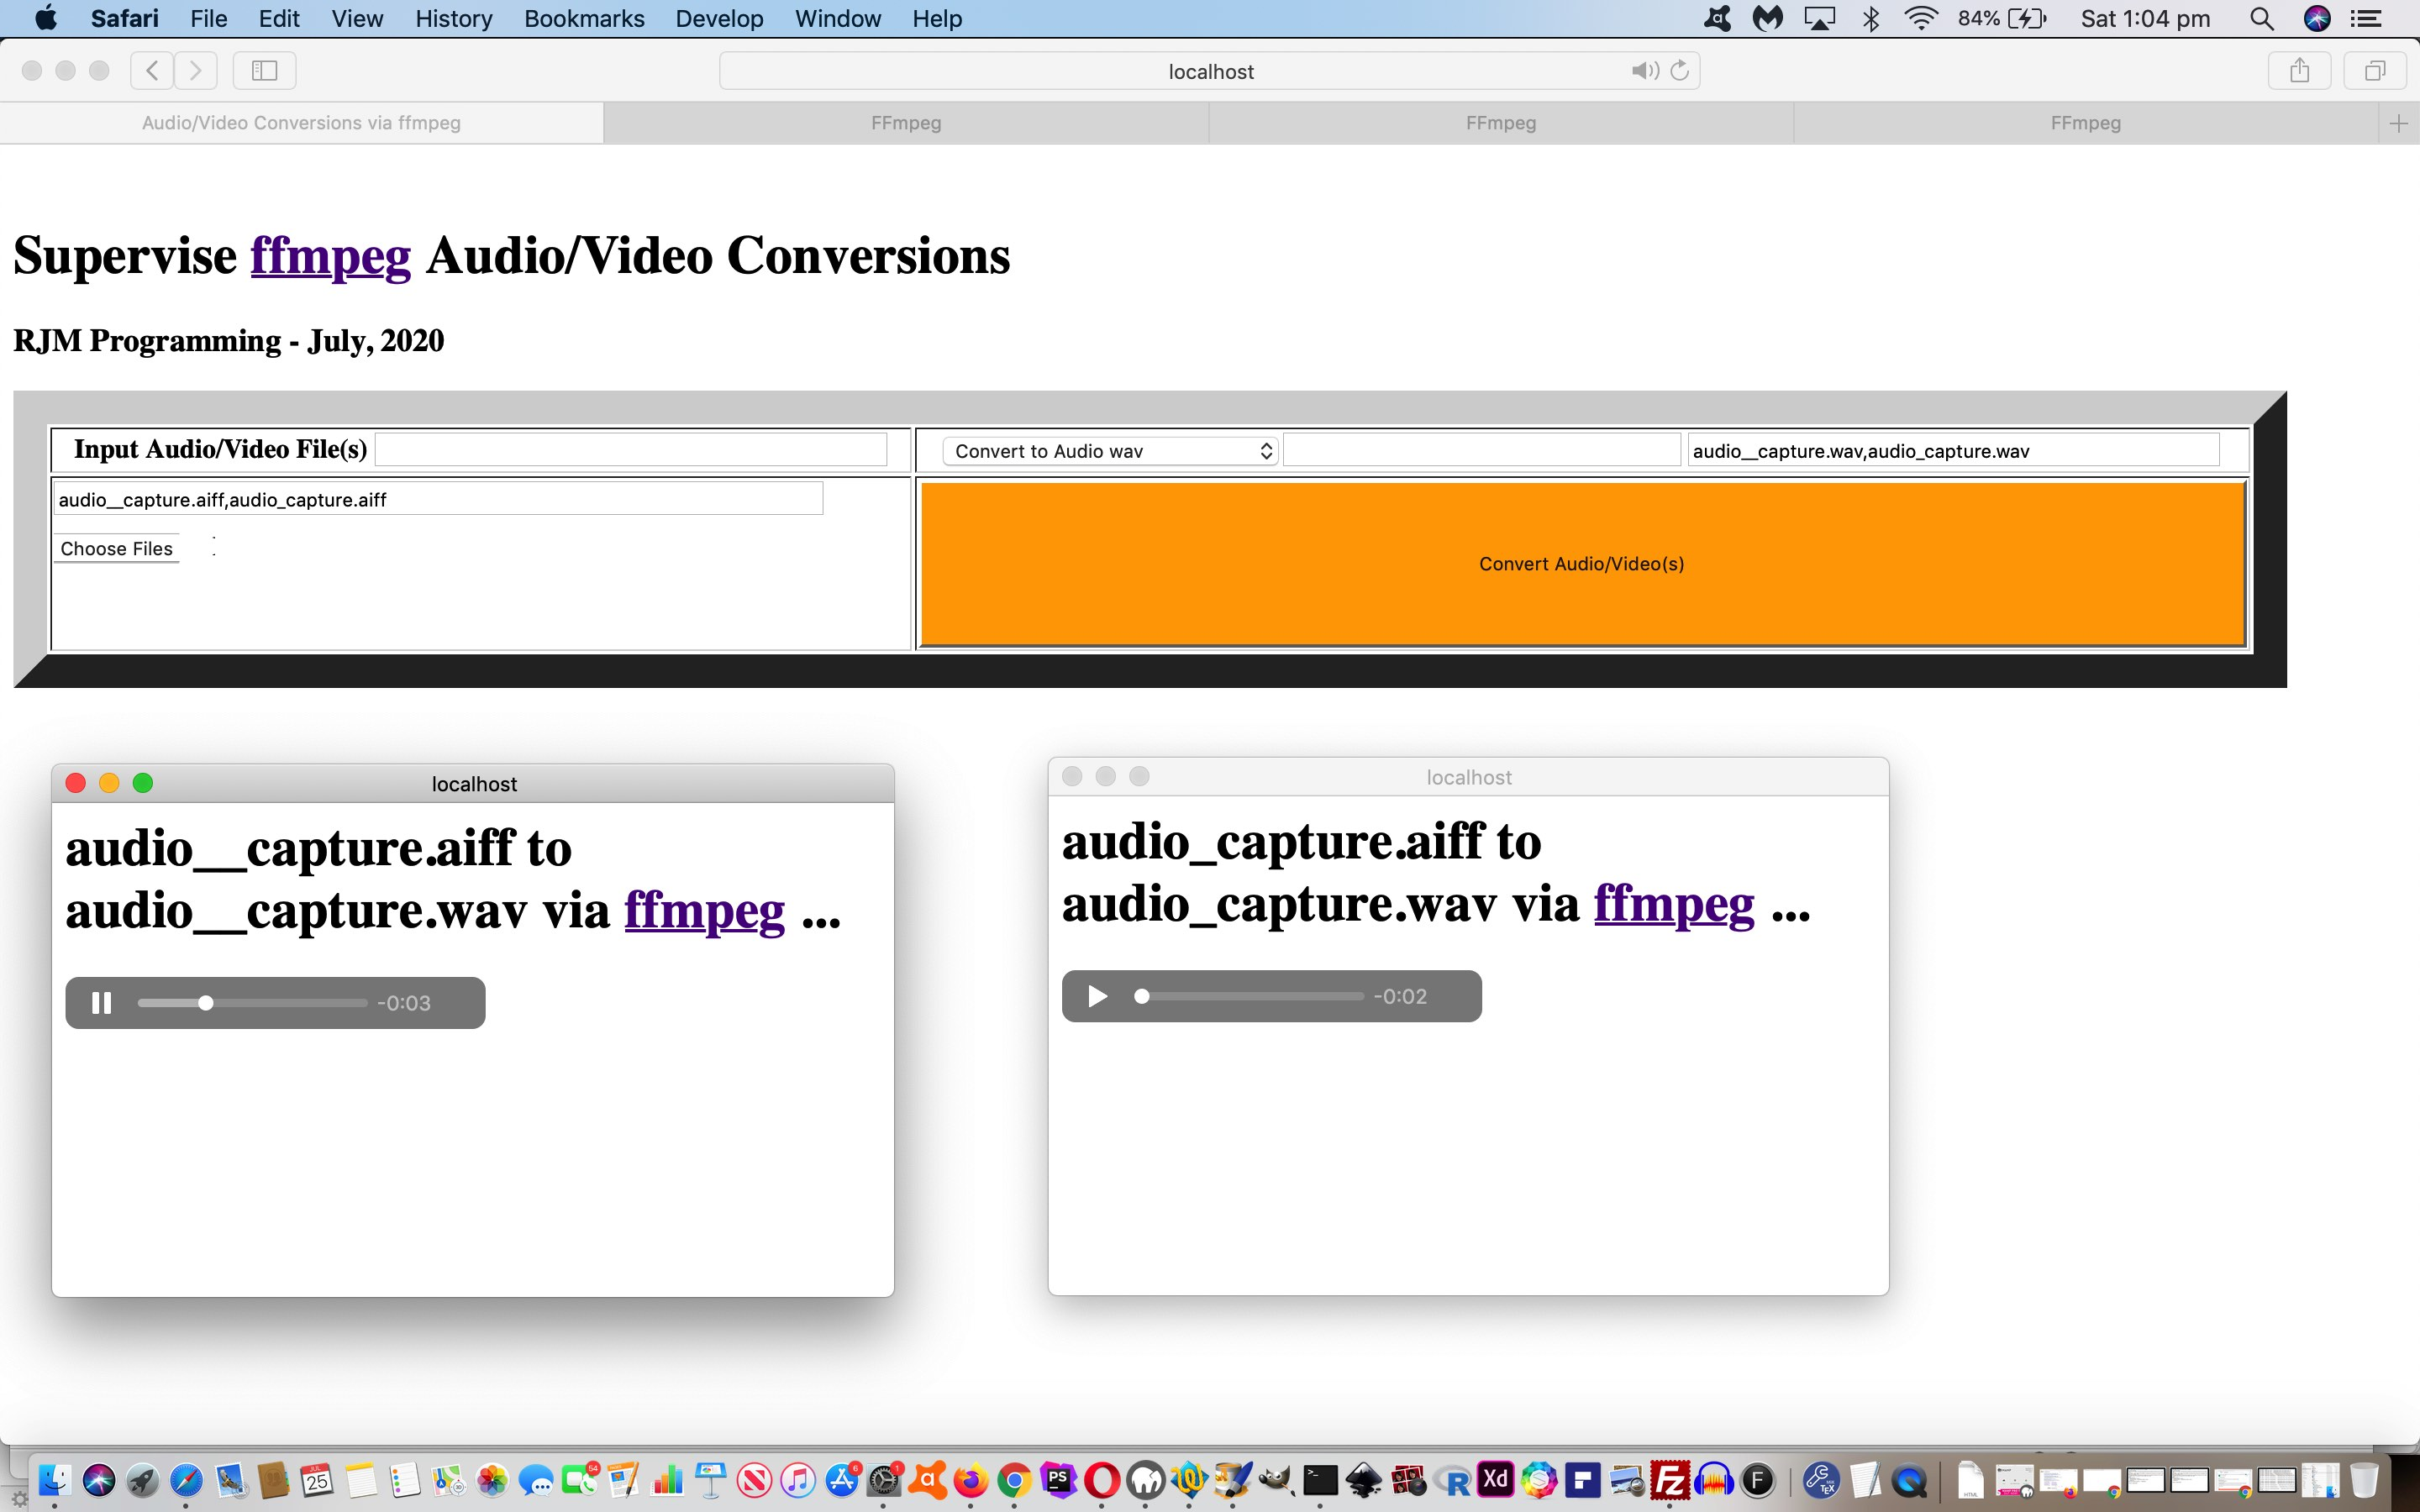 Audio and Video Supervised Conversions Primer Tutorial